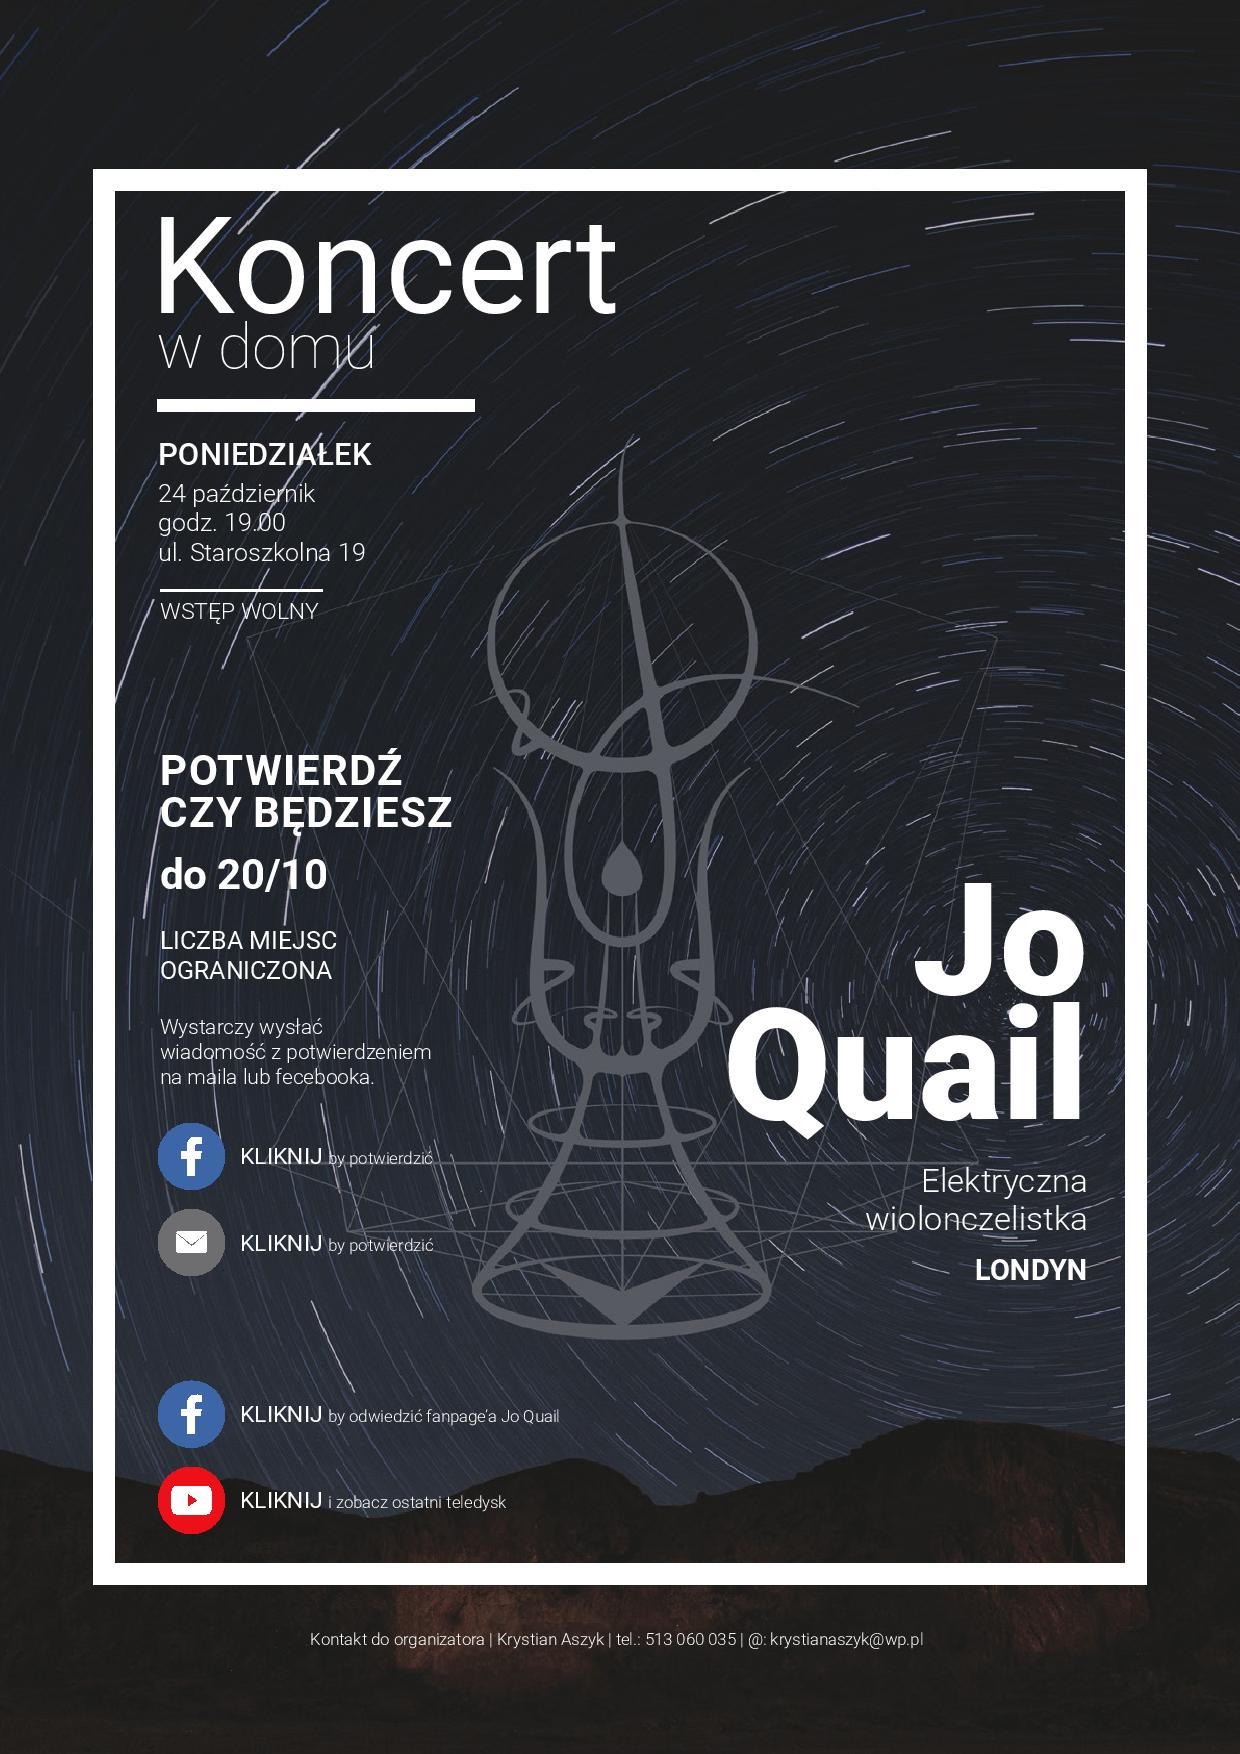 Chojnice Concert, Poland – please email krystianaszyk@wp.pl for an invitation!